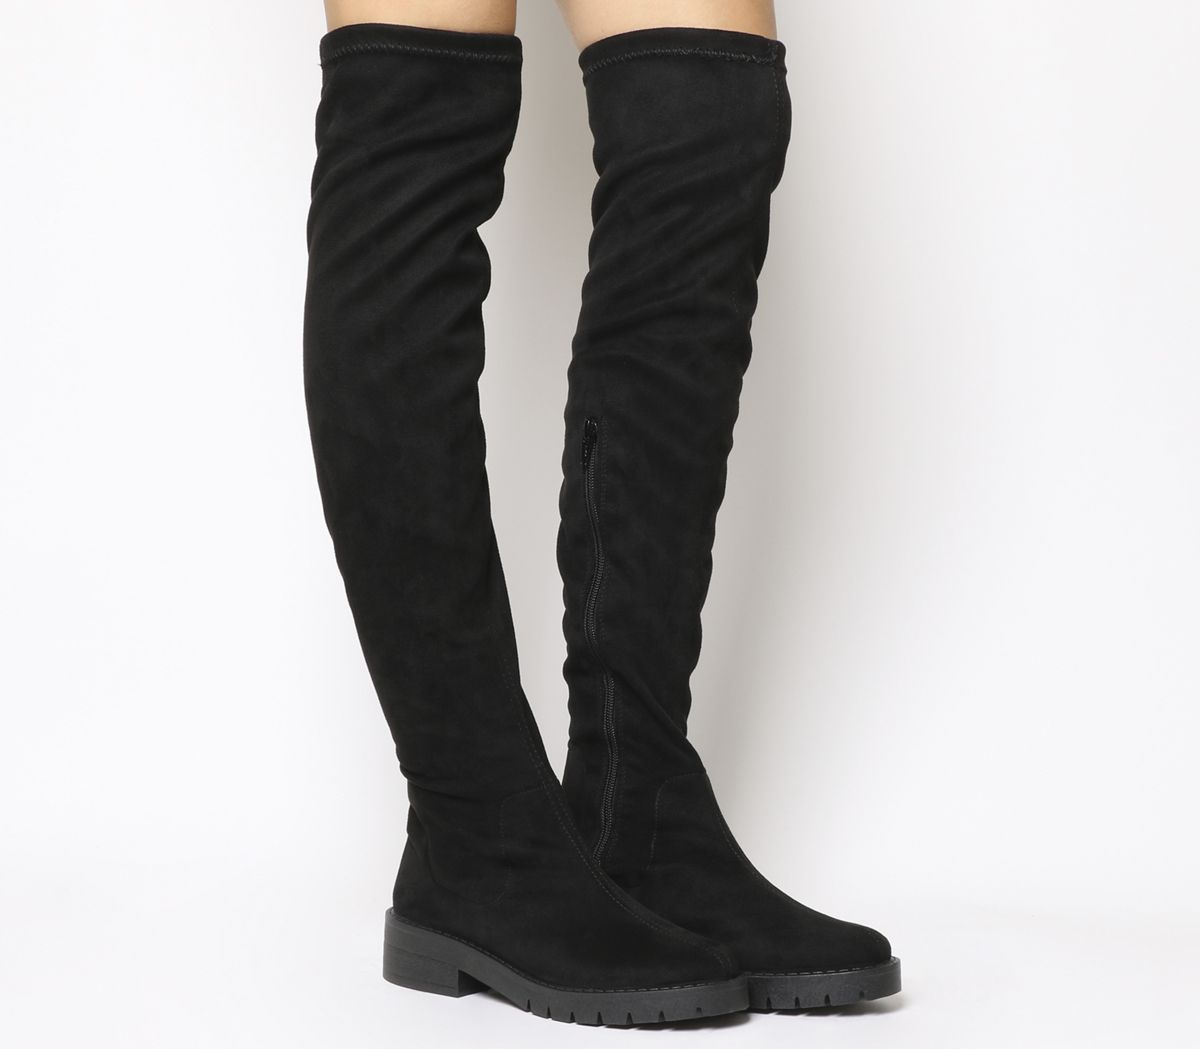 2ba6ec88a175 Office Knuckles Stretch Over The Knee Boots Black - Knee Boots